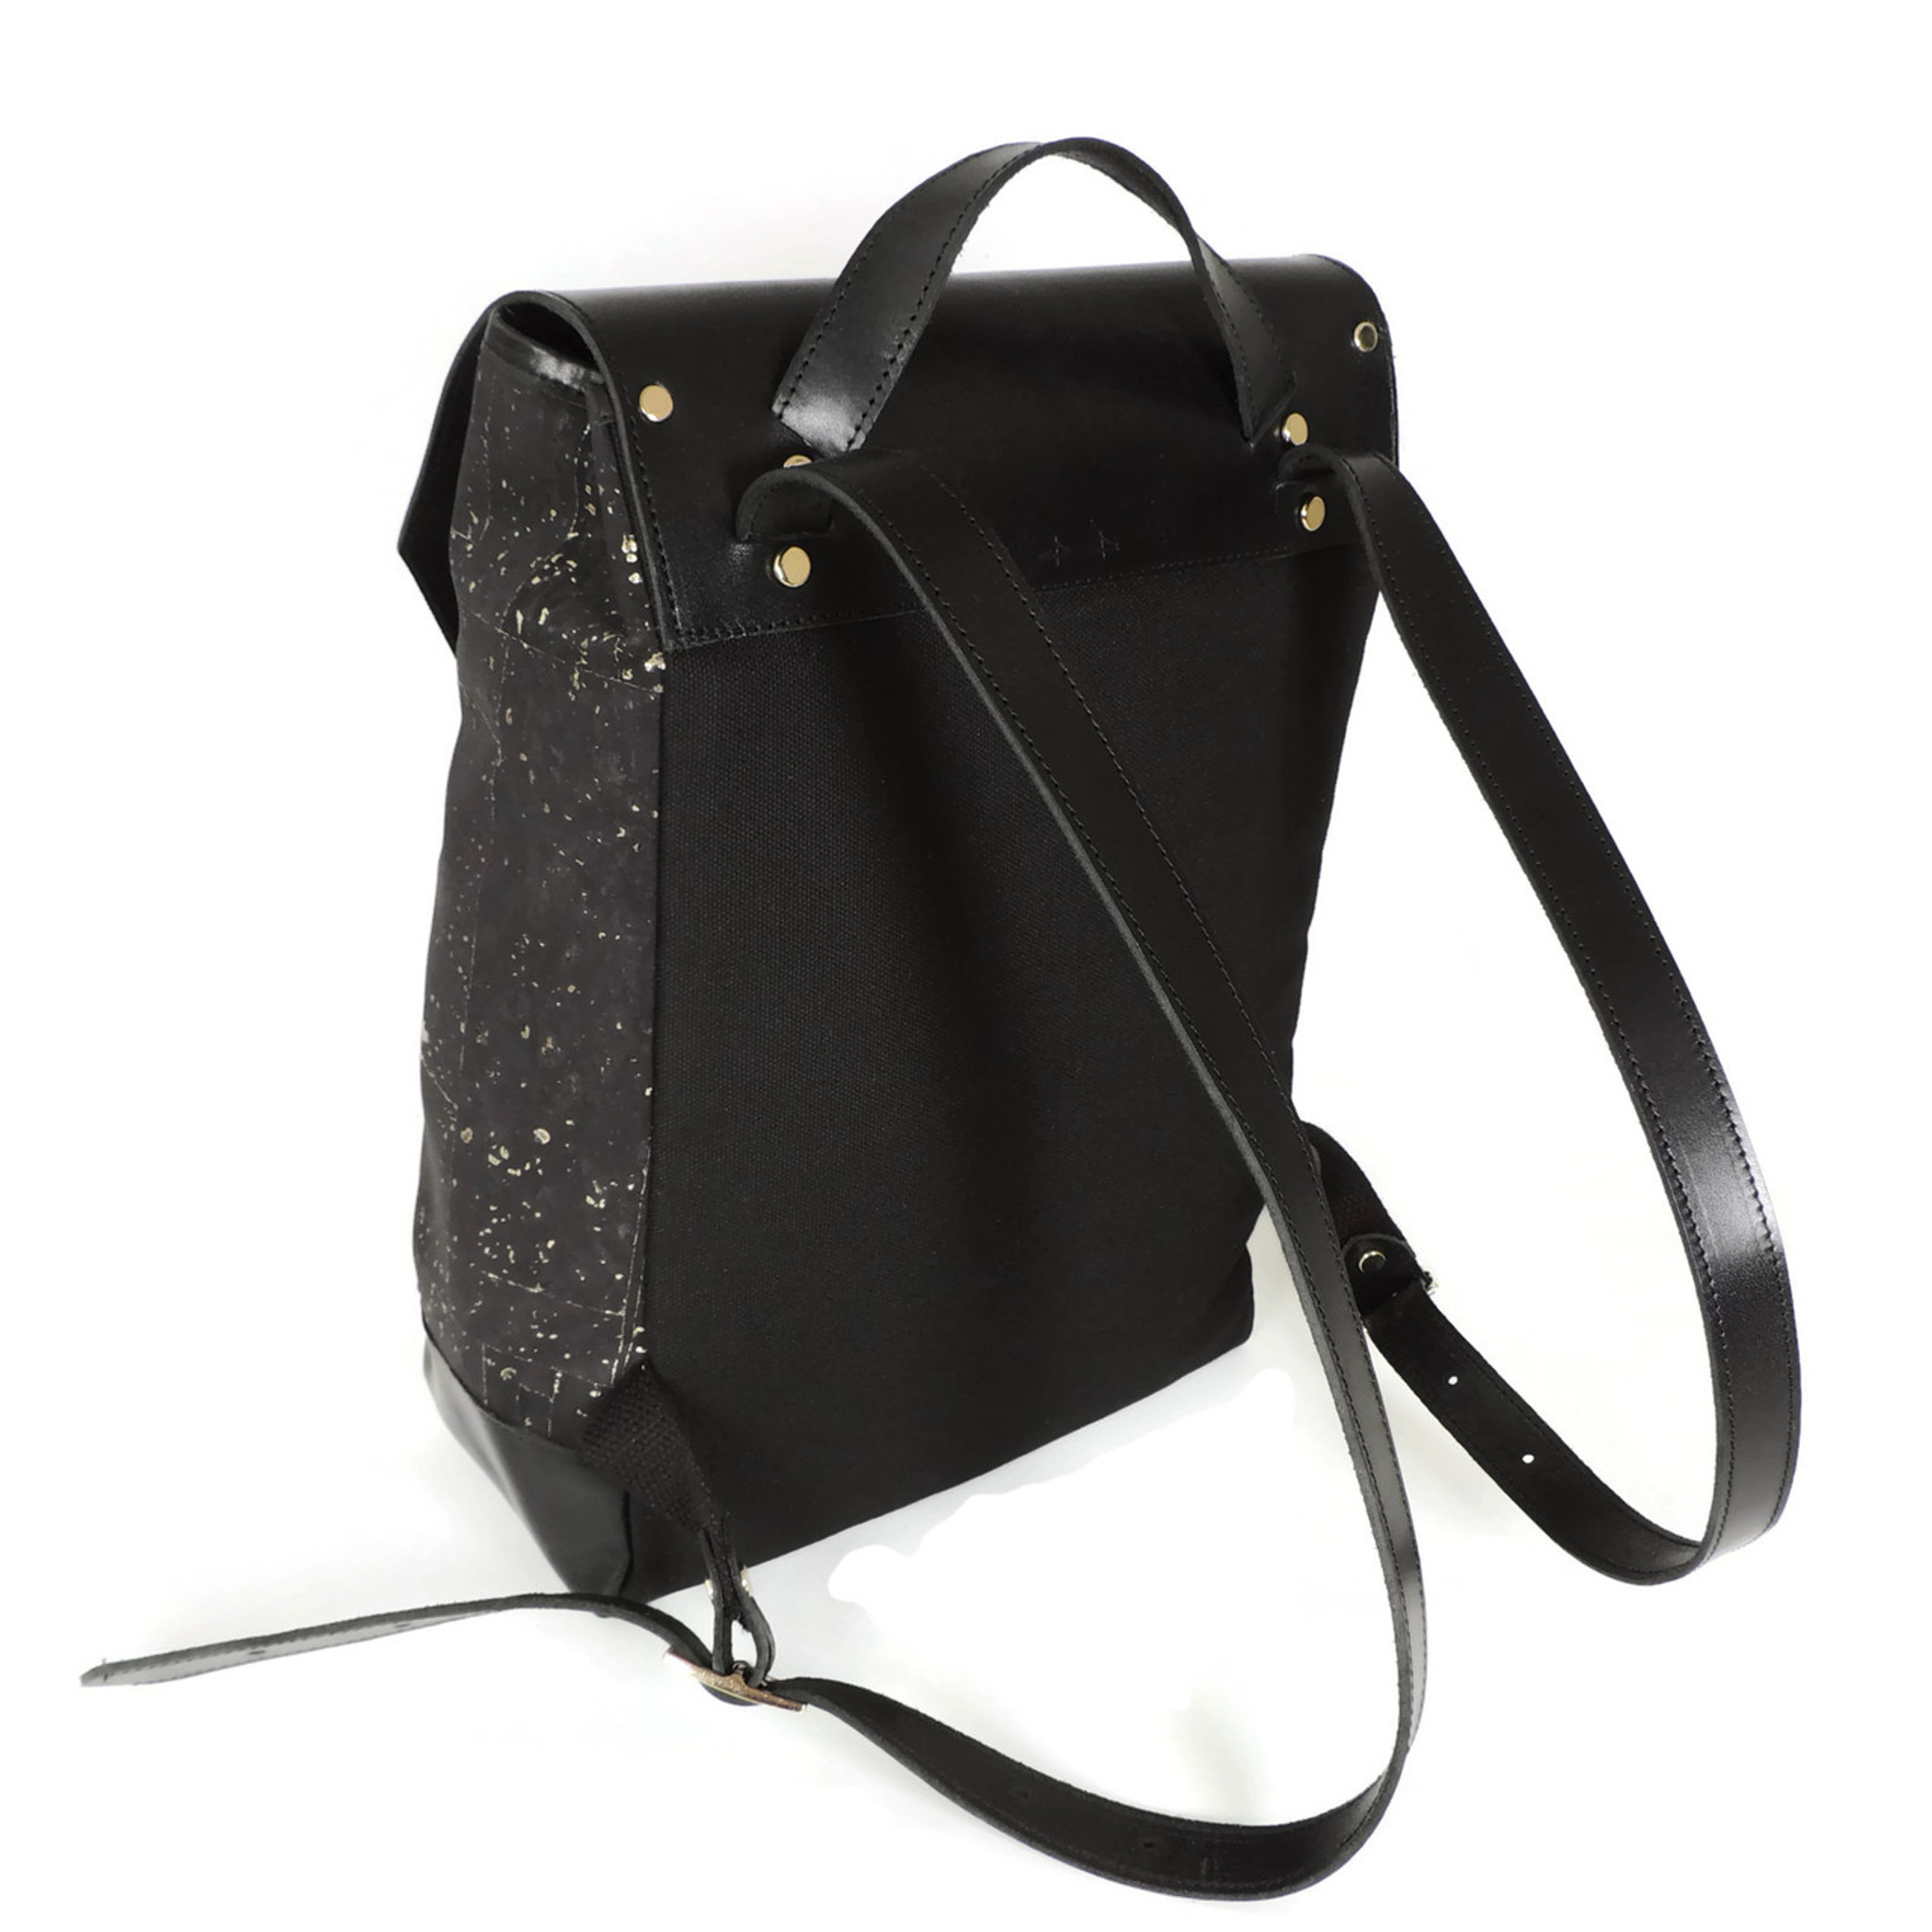 Cork & Leather Backpack in Black and Gold Cork